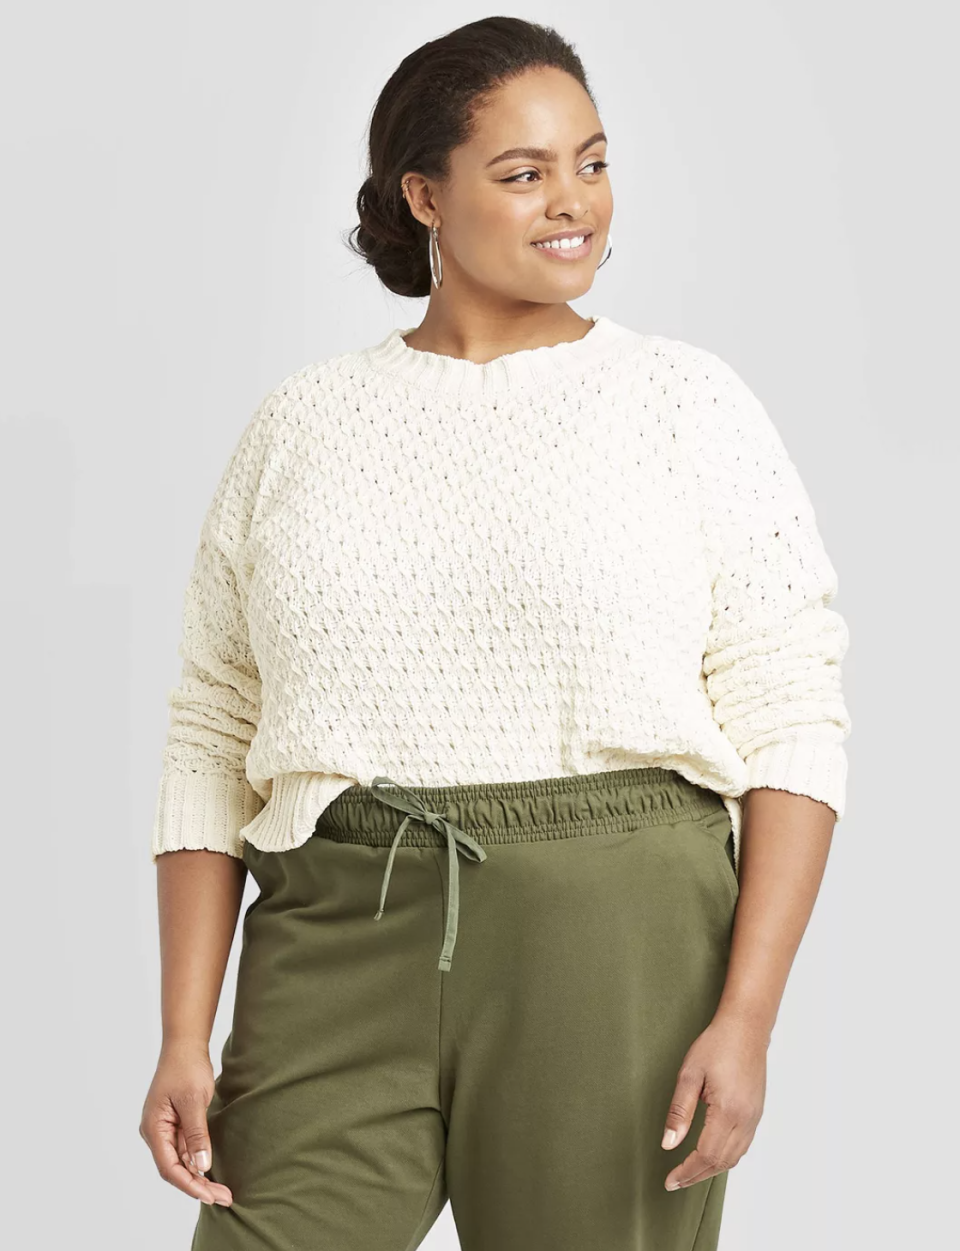 """<p><strong>A New Day</strong></p><p>target.com</p><p><strong>$20.99</strong></p><p><a href=""""https://www.target.com/p/women-s-plus-size-crewneck-textured-pullover-sweater-a-new-day/-/A-78294786"""" rel=""""nofollow noopener"""" target=""""_blank"""" data-ylk=""""slk:Shop Now"""" class=""""link rapid-noclick-resp"""">Shop Now</a></p><p>The neutral hue, the fun texture, the price tag! This is the ultimate wear-with-everything sweater your life has been missing. </p>"""